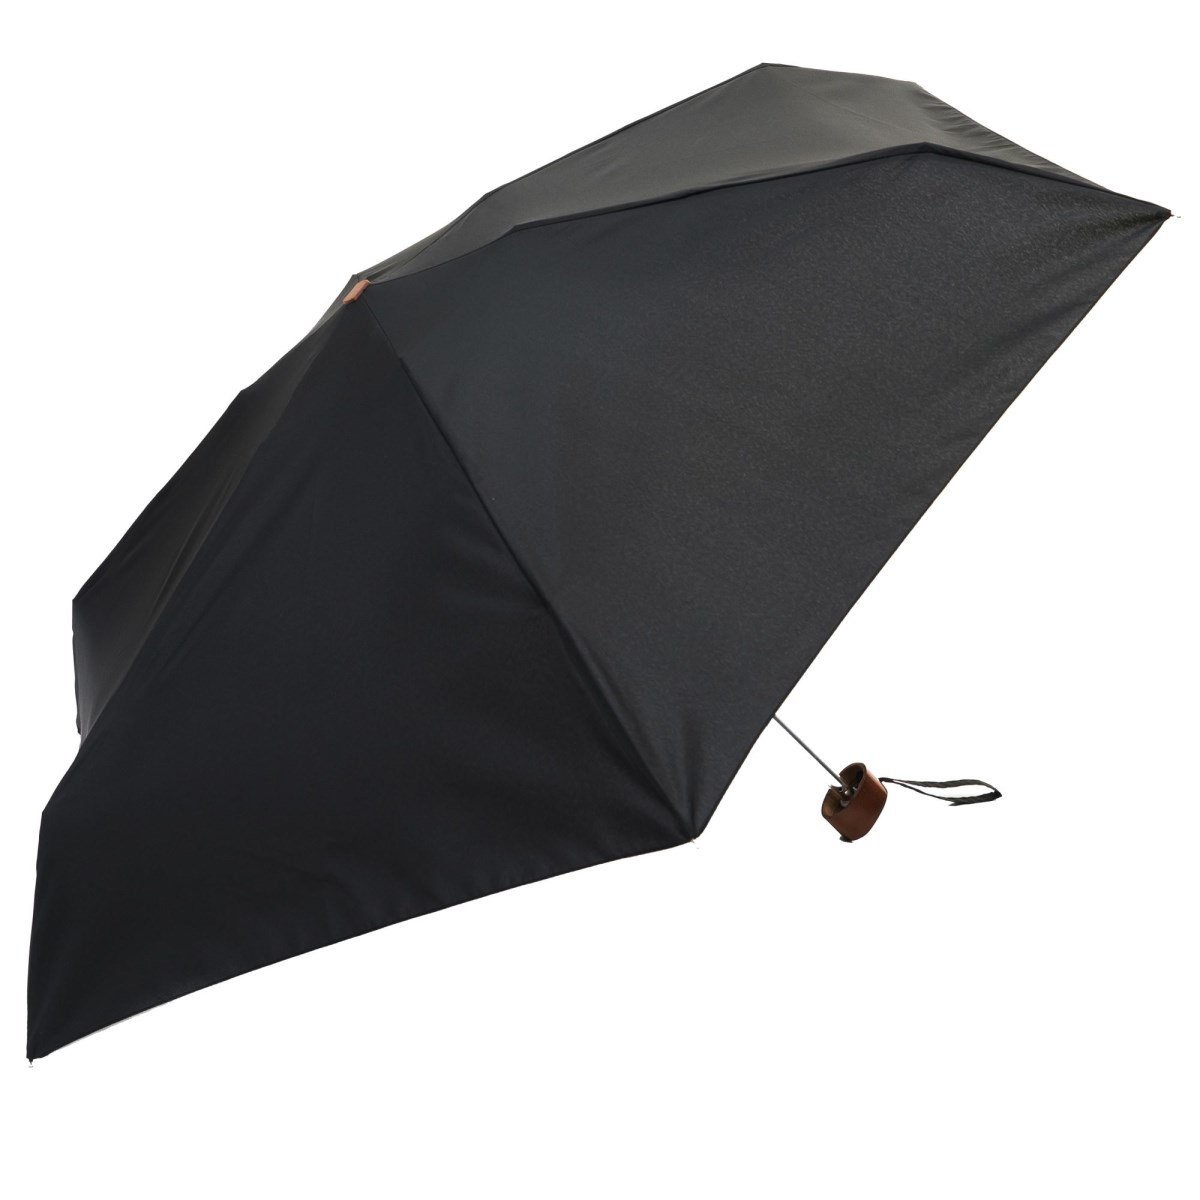 Unisex Black Mini Compact Umbrella (51003)